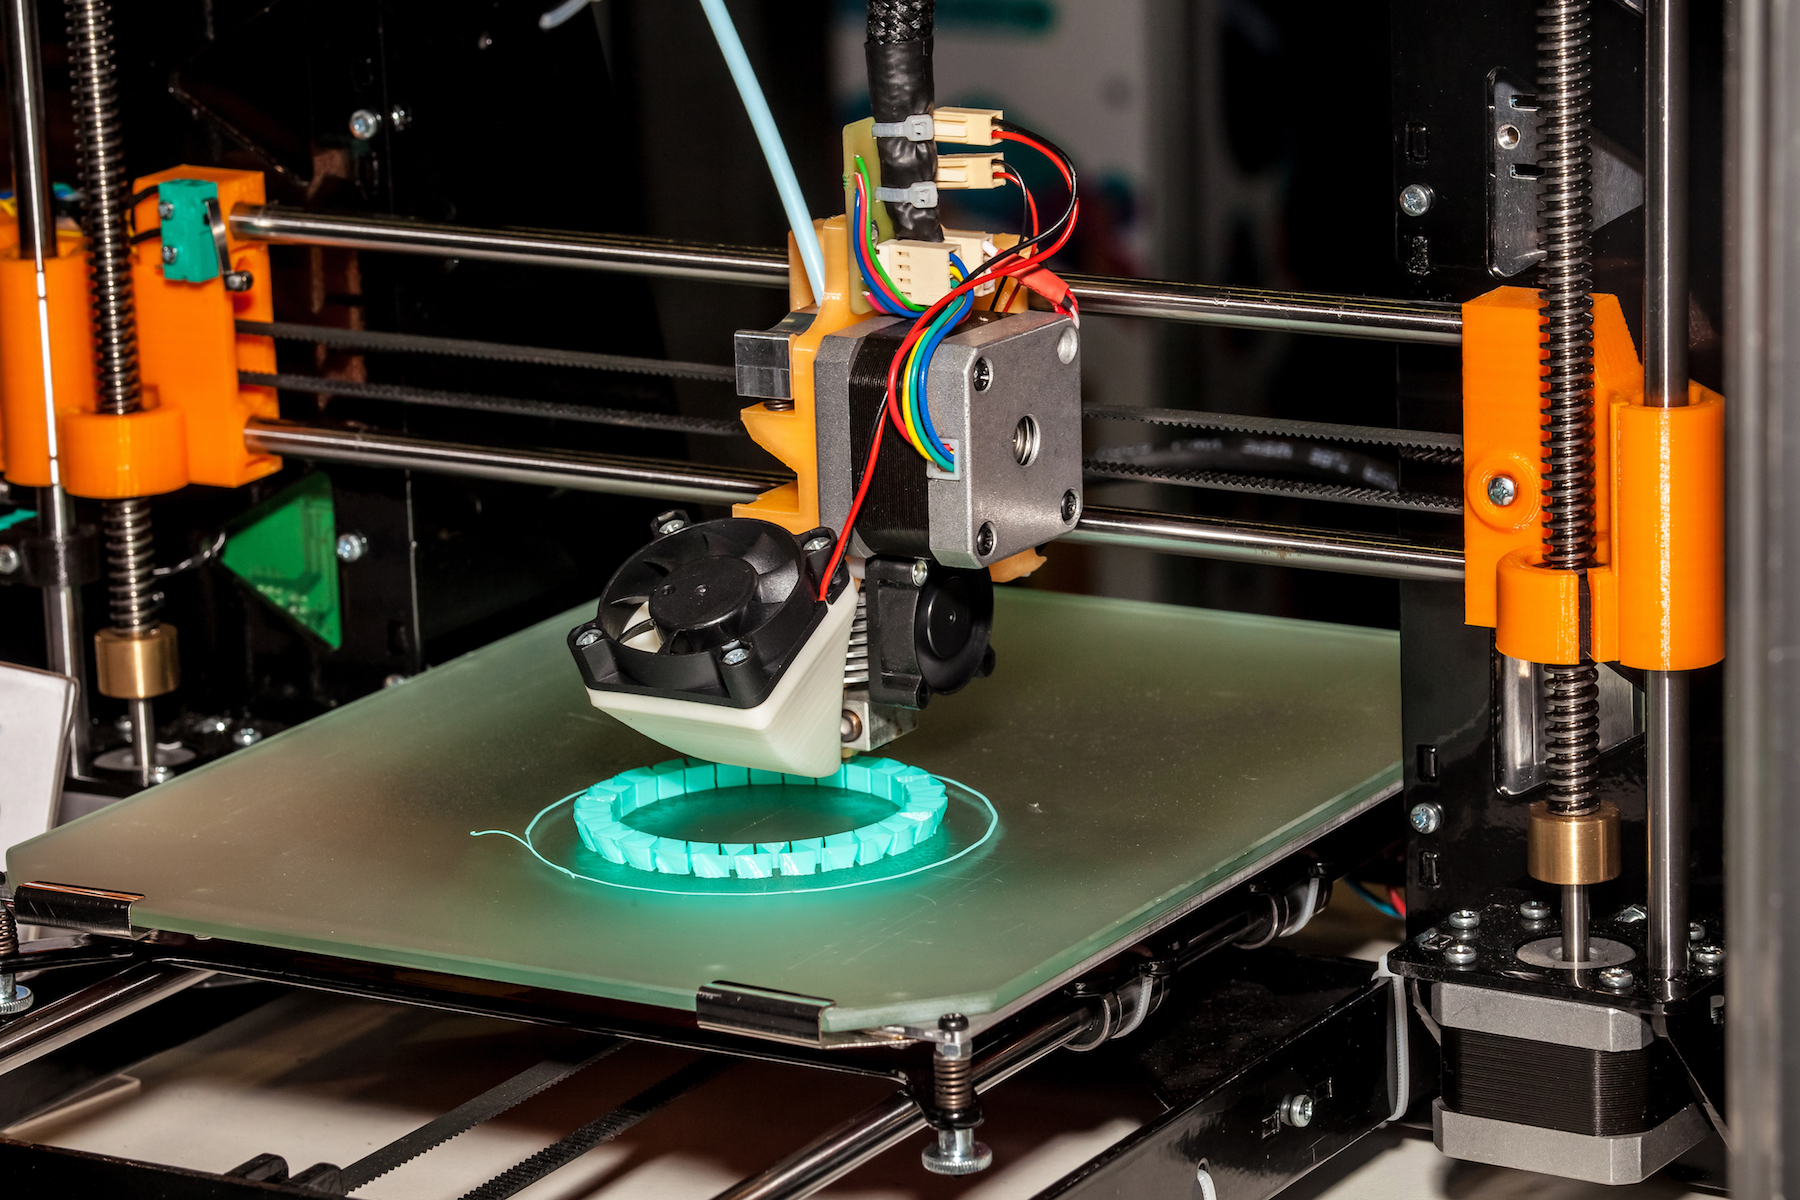 New research has found that 3D printing could also be used to make weapons, posing a risk to both the general public and military allies.